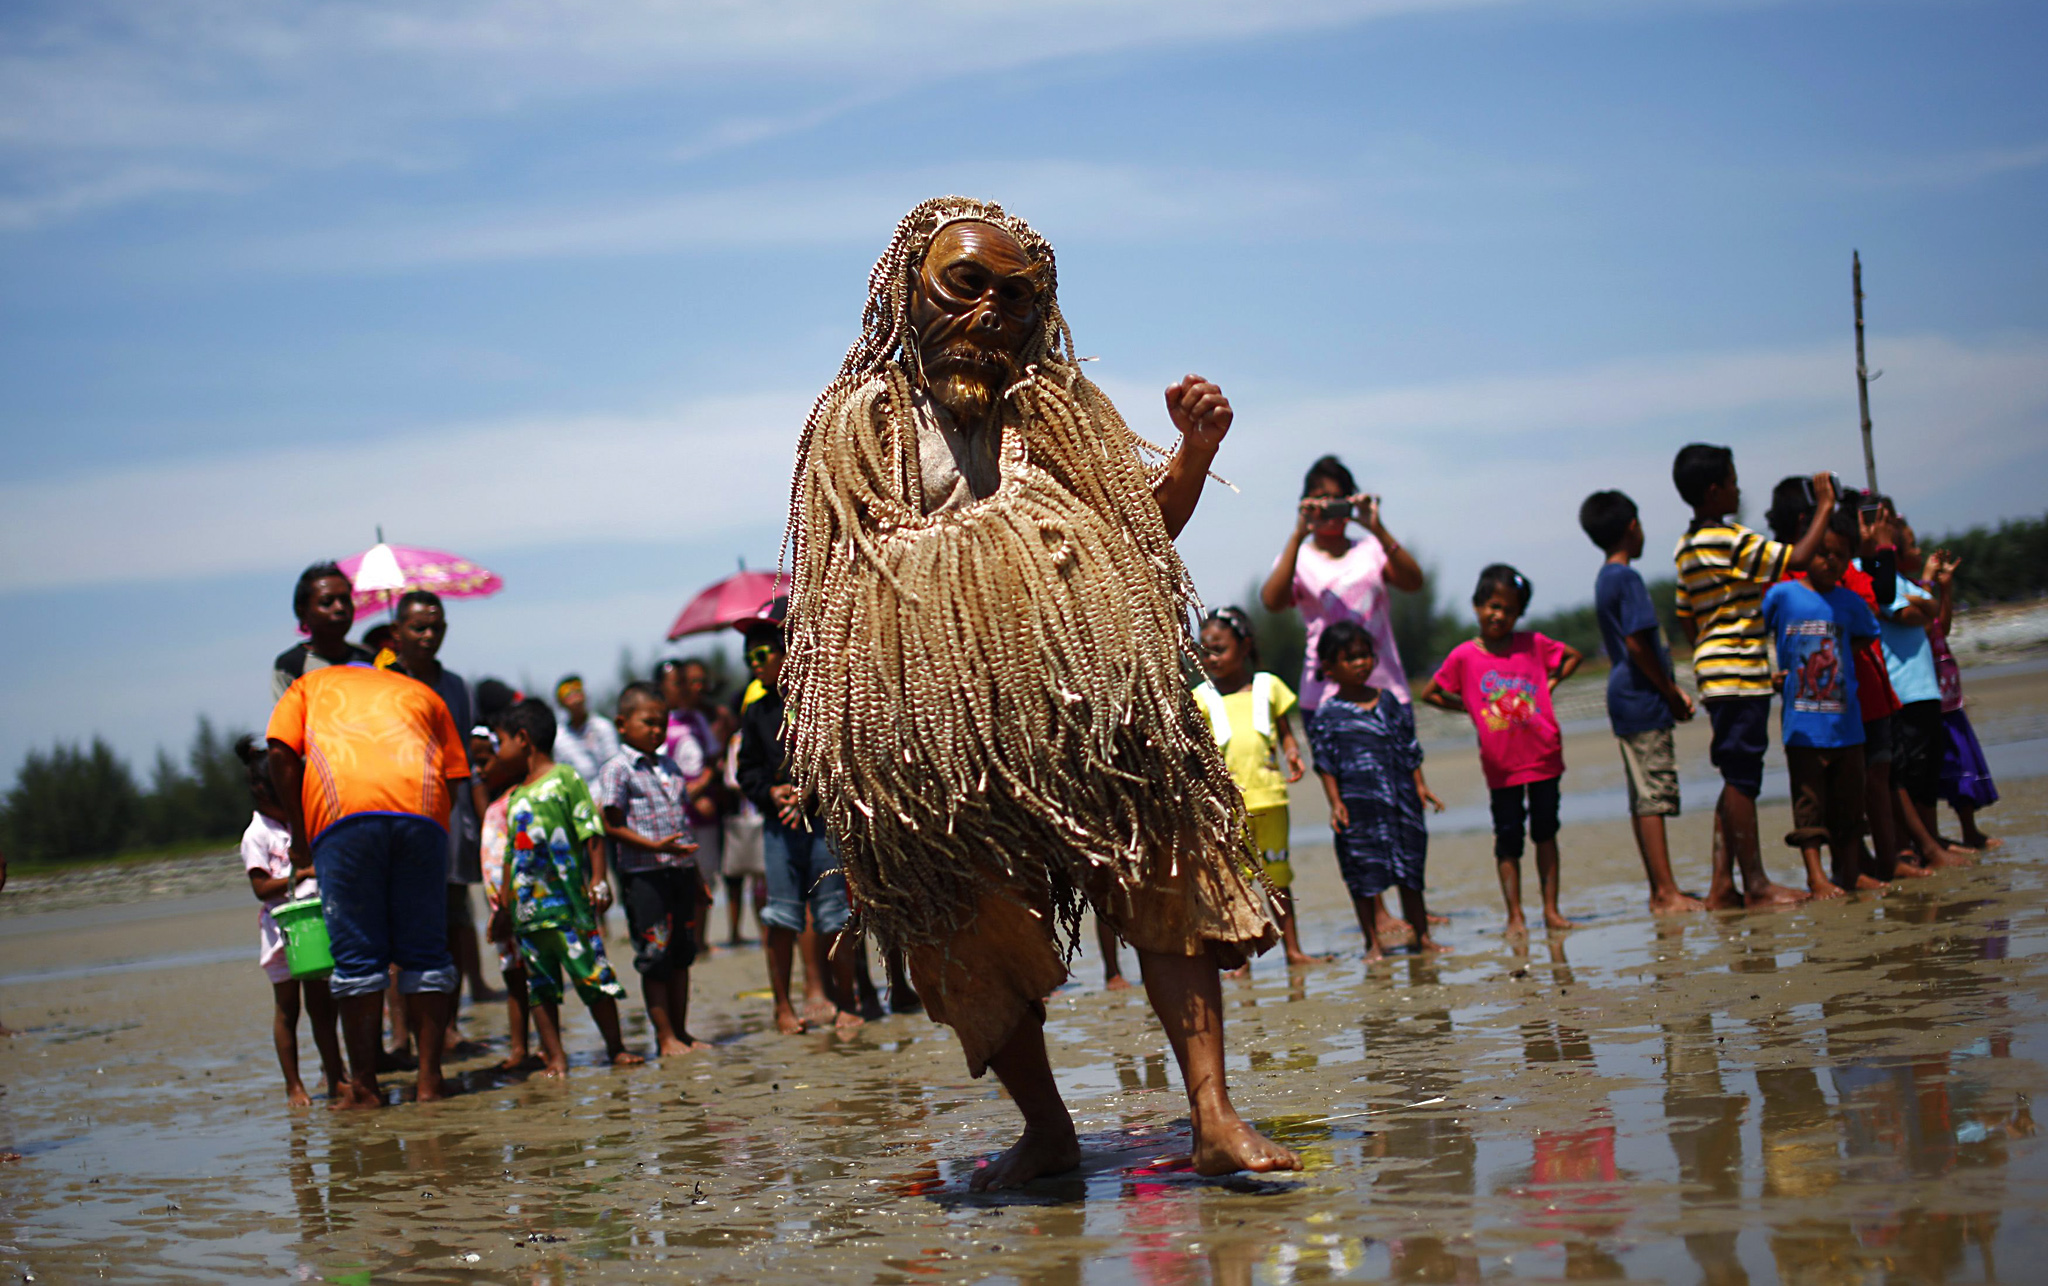 "Members of Malaysia's indigenous Mah Meri tribe perform the ""Main Jo-oh"" dance during a thanksgiving ritual in the village of Pulau Carey...Members of Malaysia's indigenous Mah Meri tribe perform the ""Main Jo-oh"" dance during ""Puja Pantai"", a thanksgiving ritual to appease the spirits of the seas, in the village of Pulau Carey, outside Kuala Lumpur February 4, 2014.The Mah Meri tribe, who are descendants of seafaring people who lived off the sea through fishing and trading, celebrate their new year on February 4 this year according to the lunar calendar, by making offerings to the sea. REUTERS/Samsul Said"